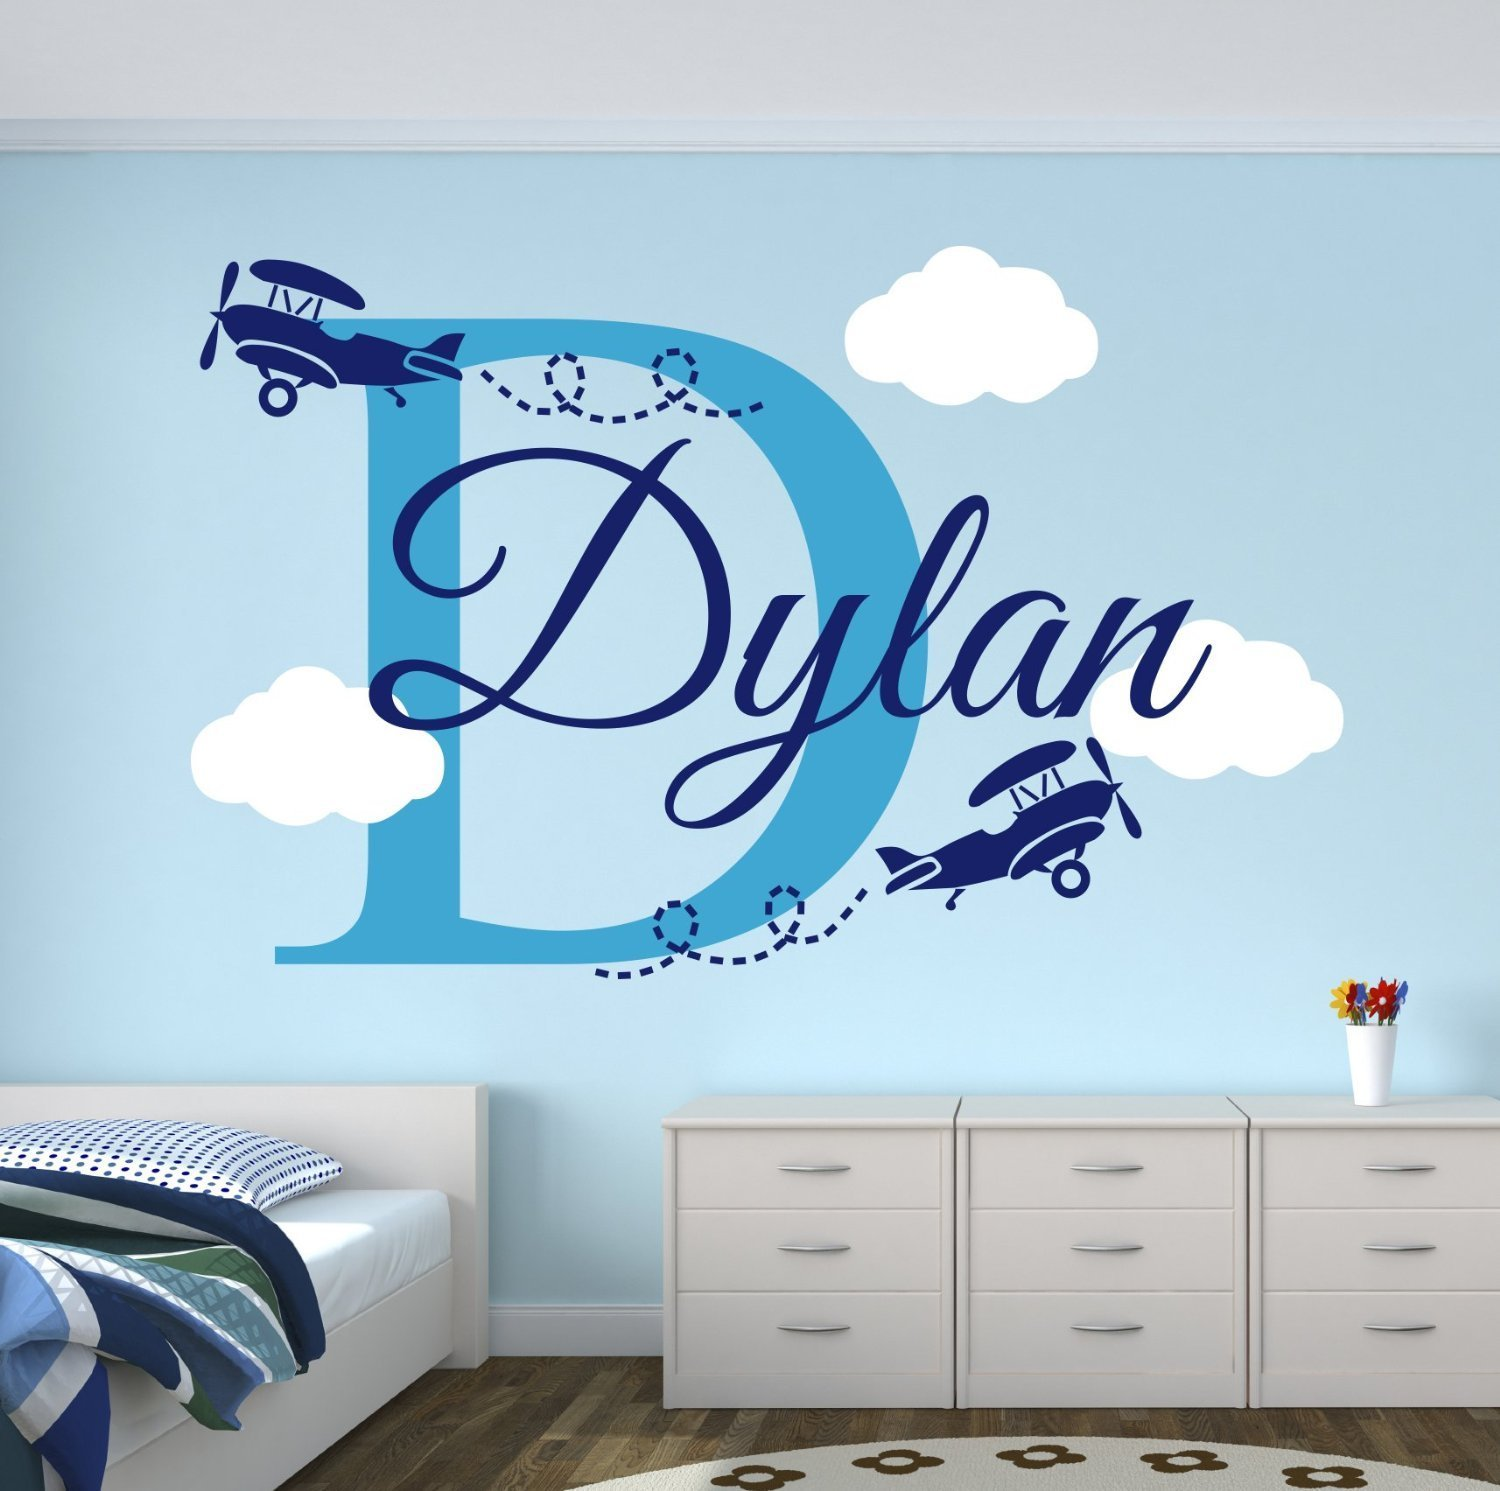 Baby boy room decor stickers - Eco Friendly Custom Name Airplane Clouds Decal Nursery Decor Boys Kids Room Decor Vinyl Wall